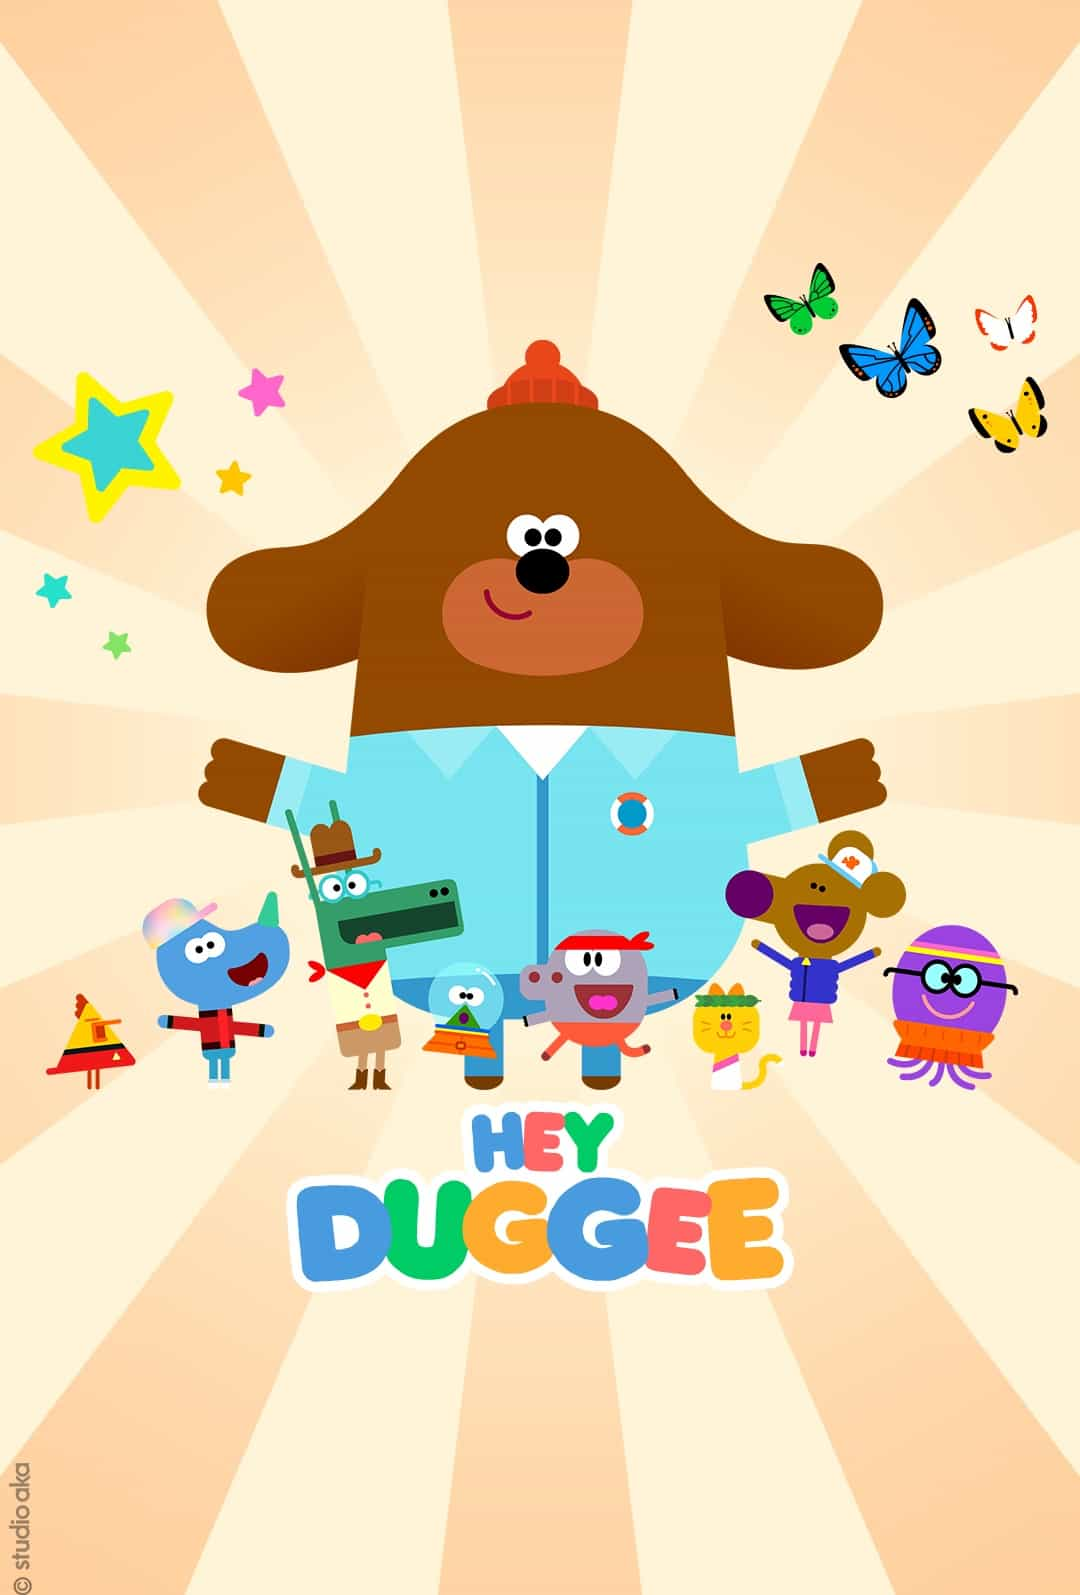 Hey Duggee At The Movies